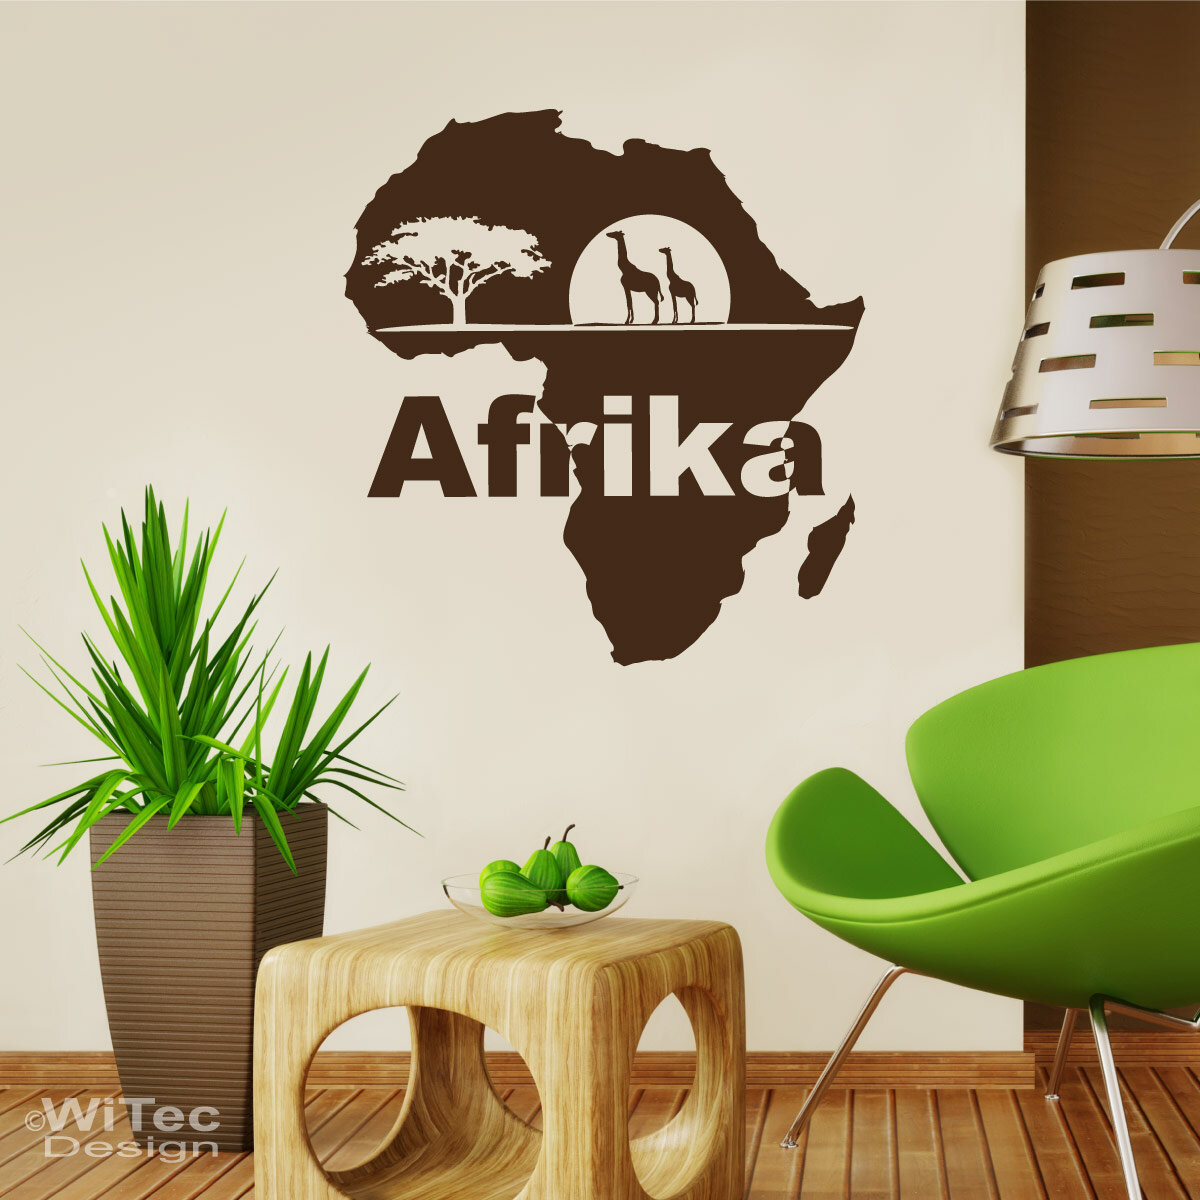 wandtattoo afrika giraffe wandaufkleber. Black Bedroom Furniture Sets. Home Design Ideas